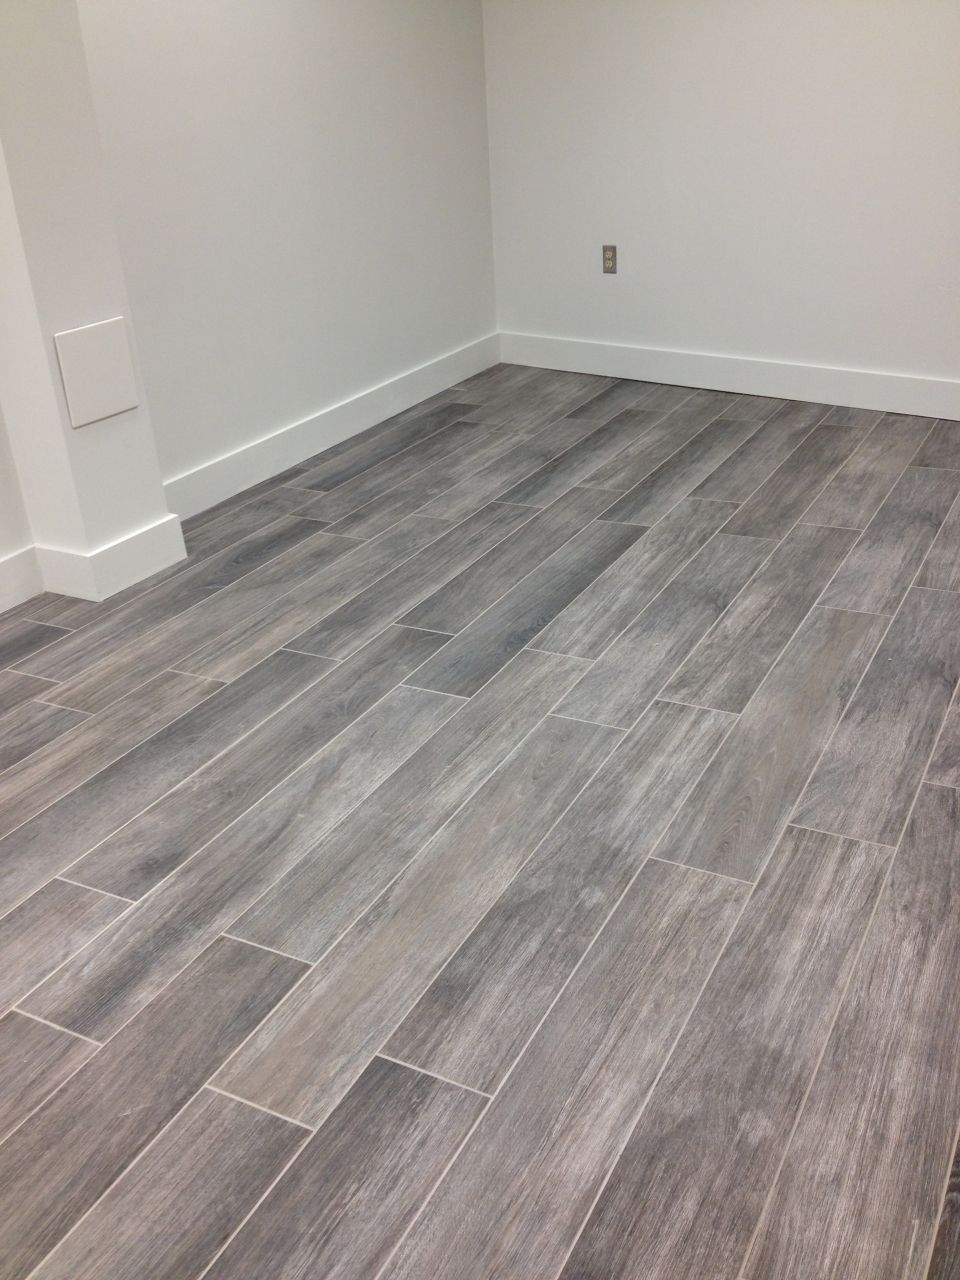 Gray Wood Tile Floor NOlcDn Homes Pinterest Wood Tile - What to look for in laminate wood flooring